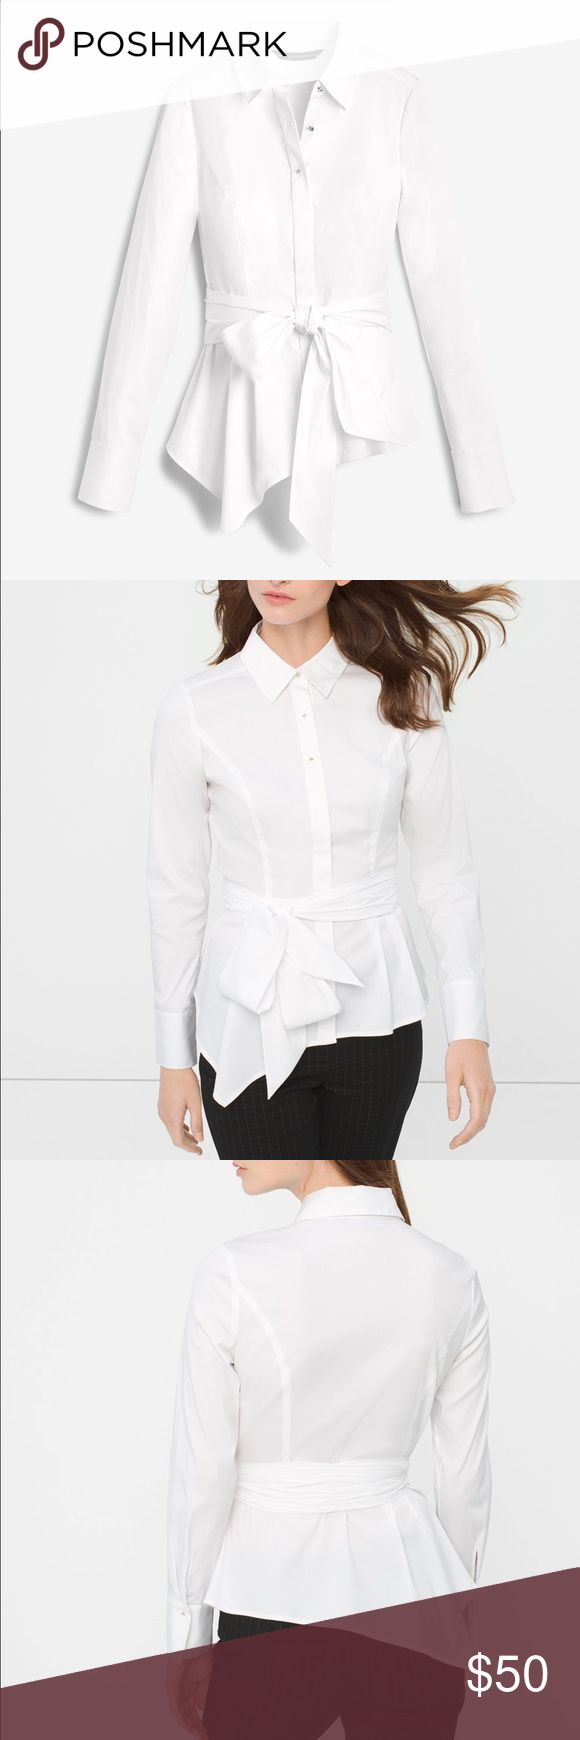 """🐰Easter Bunny Sale!!🐰WHBM Cotton Stretch Blouse Very tailored look with this beautiful Asymmetric Blouse with gold detail. New with tags. Precise pleats and a self belt accent this white poplin blouse, creating an asymmetric peplum effect. Cotton/nylon/spandex. Machine wash, cold. Approx. 29.5"""" from shoulder at longest. White House Black Market Tops Button Down Shirts"""